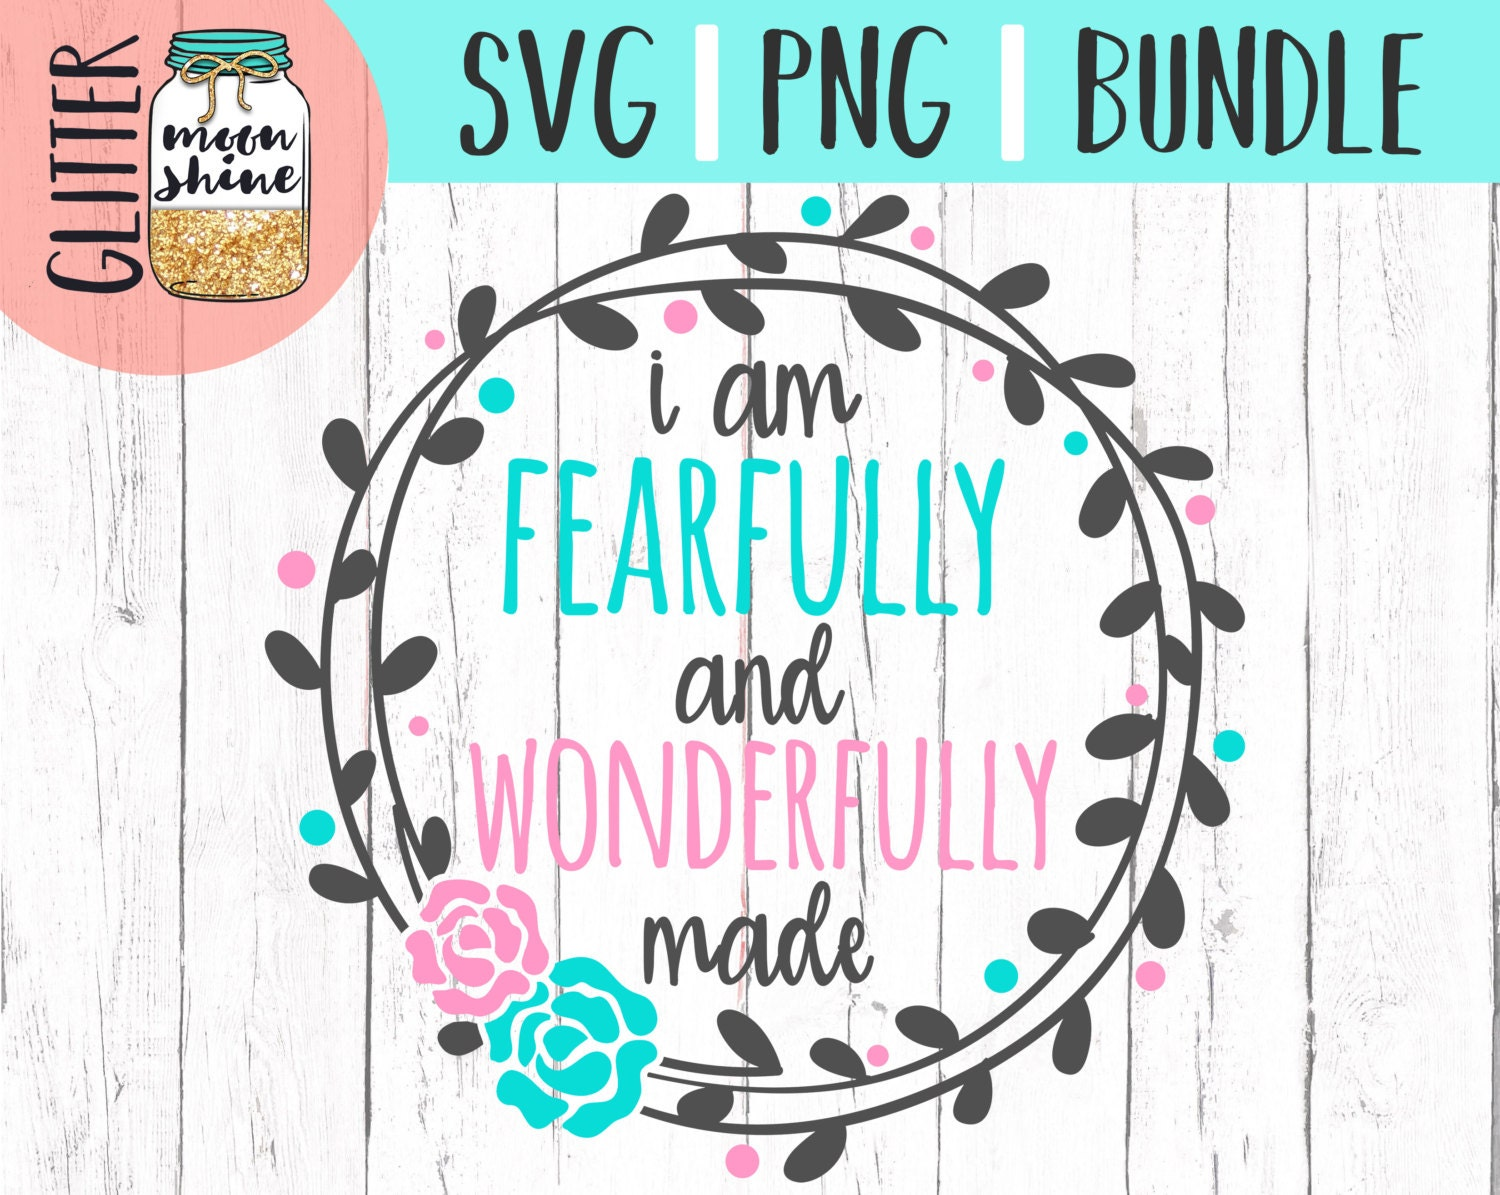 fearfully and wonderfully made svg and png files for cutting